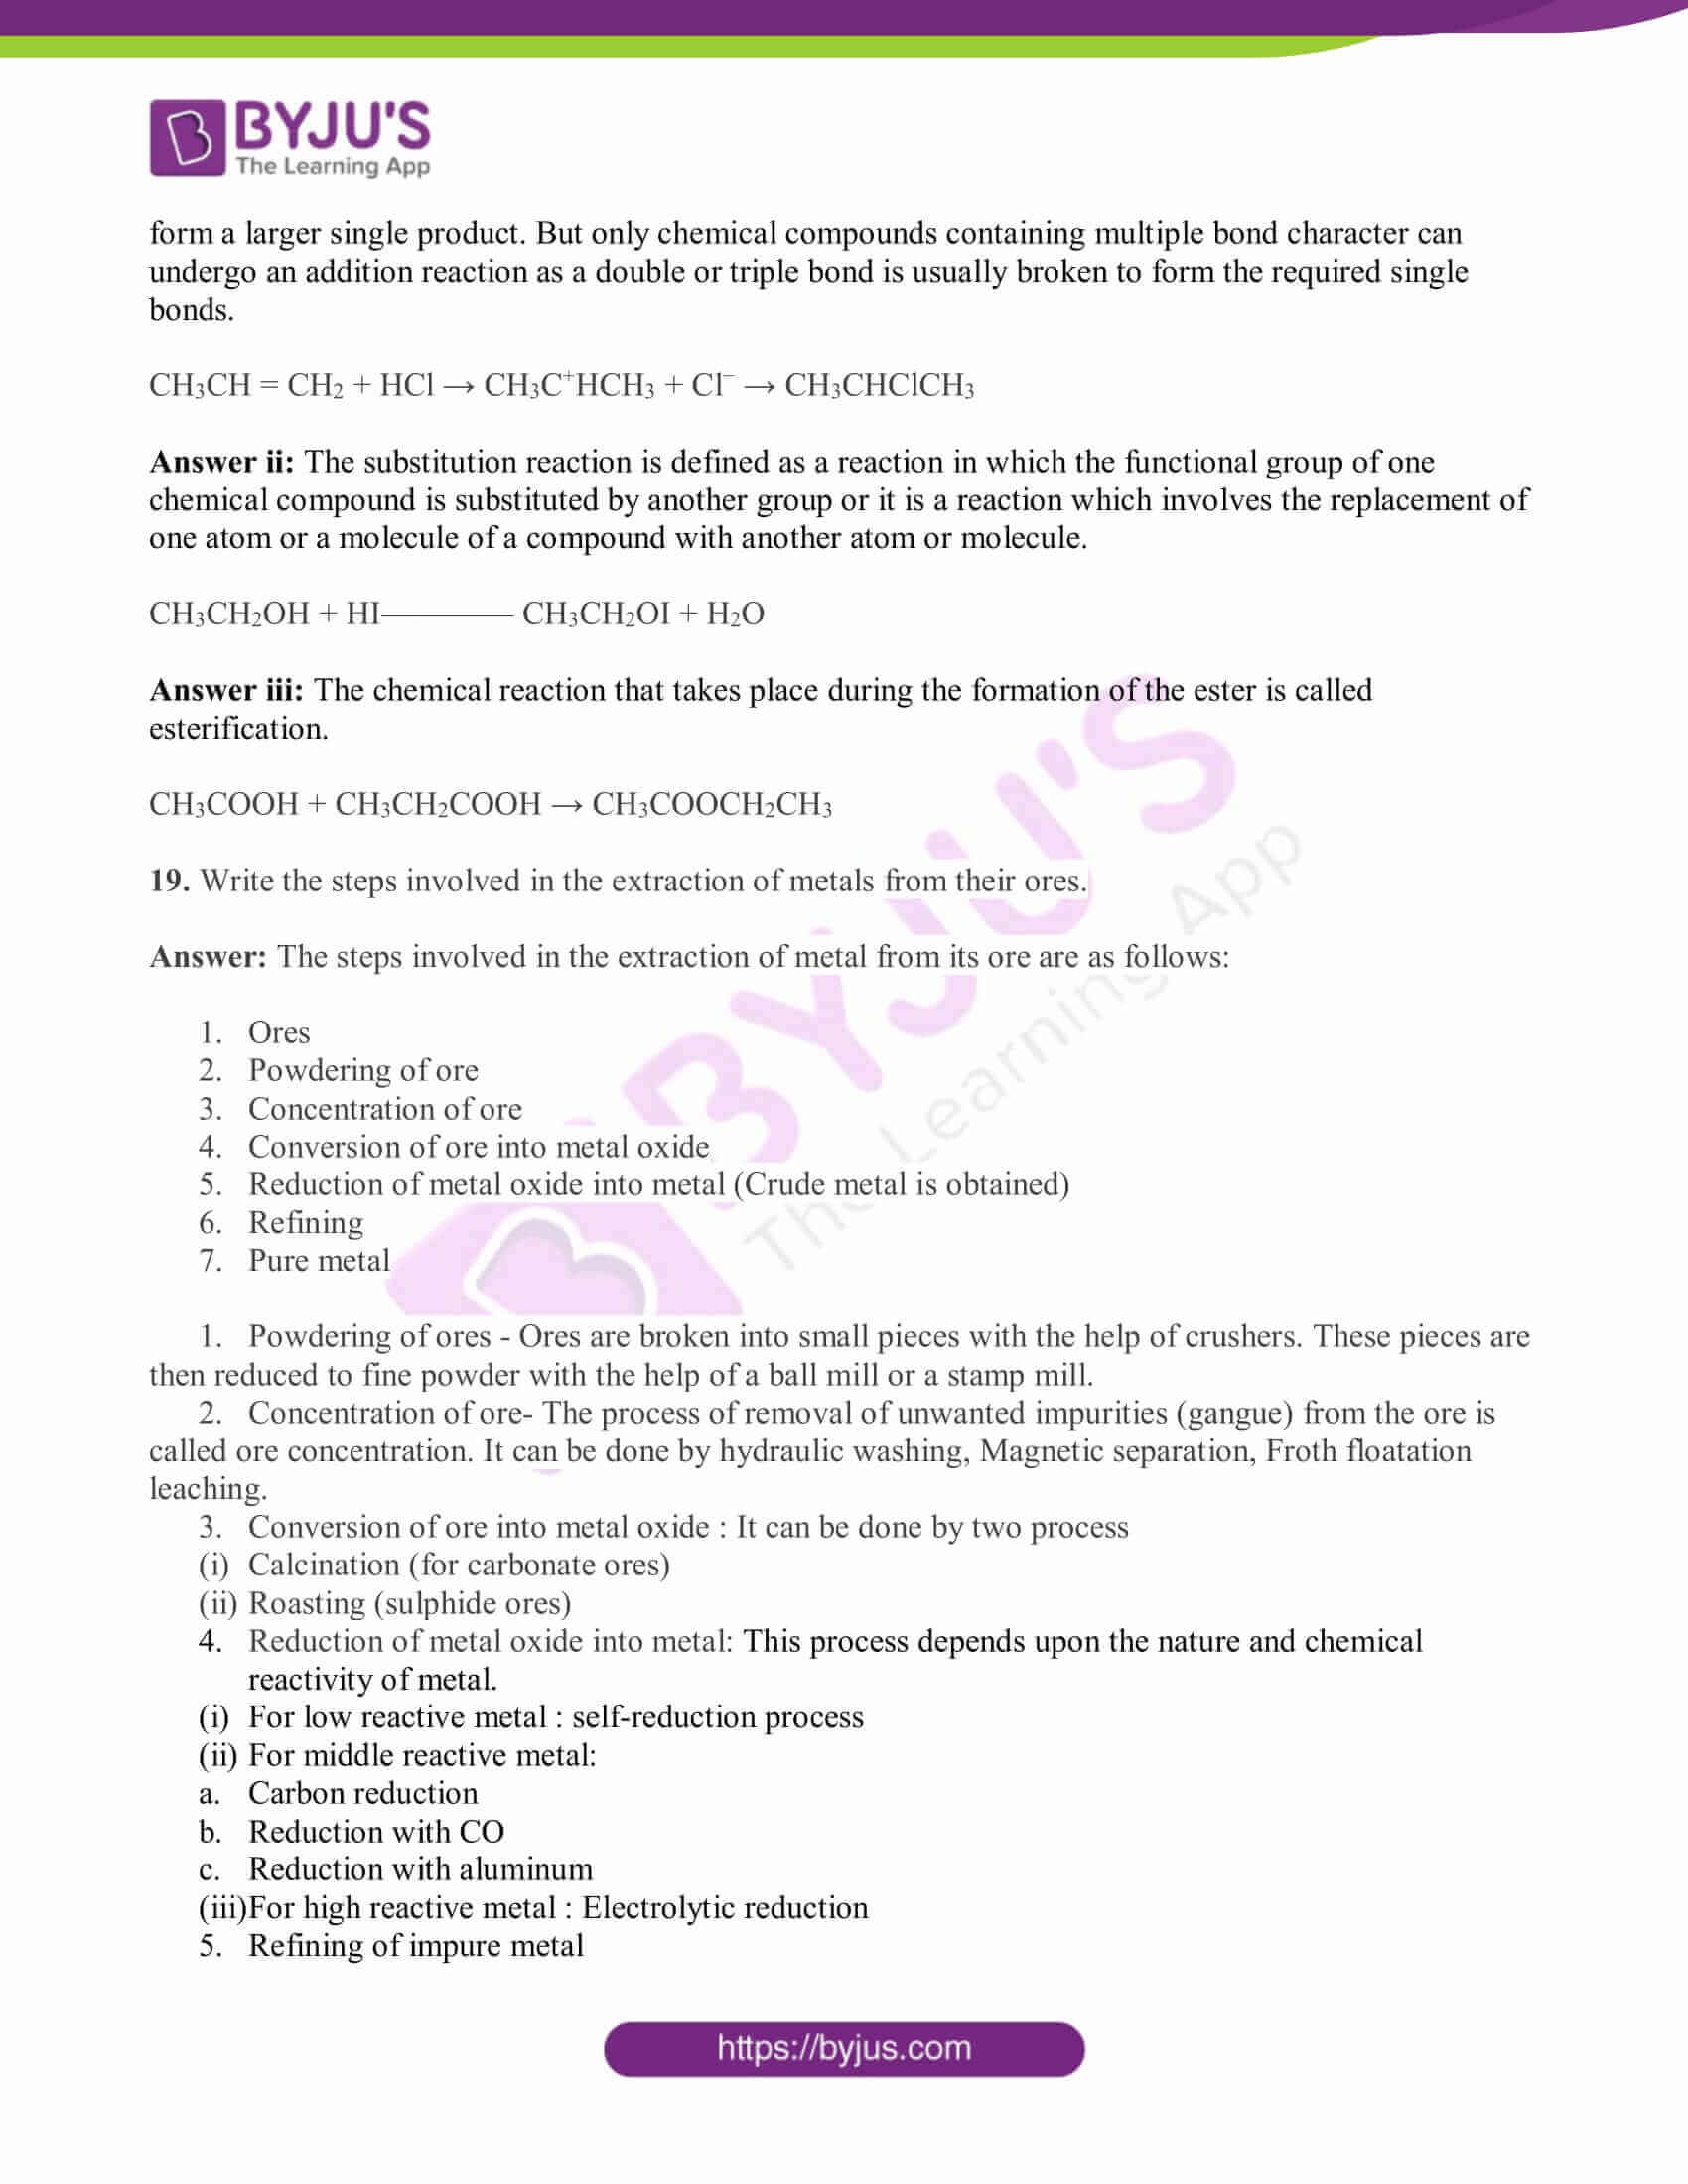 bihar board class 10 sci solved pre year quest papers 2019 19